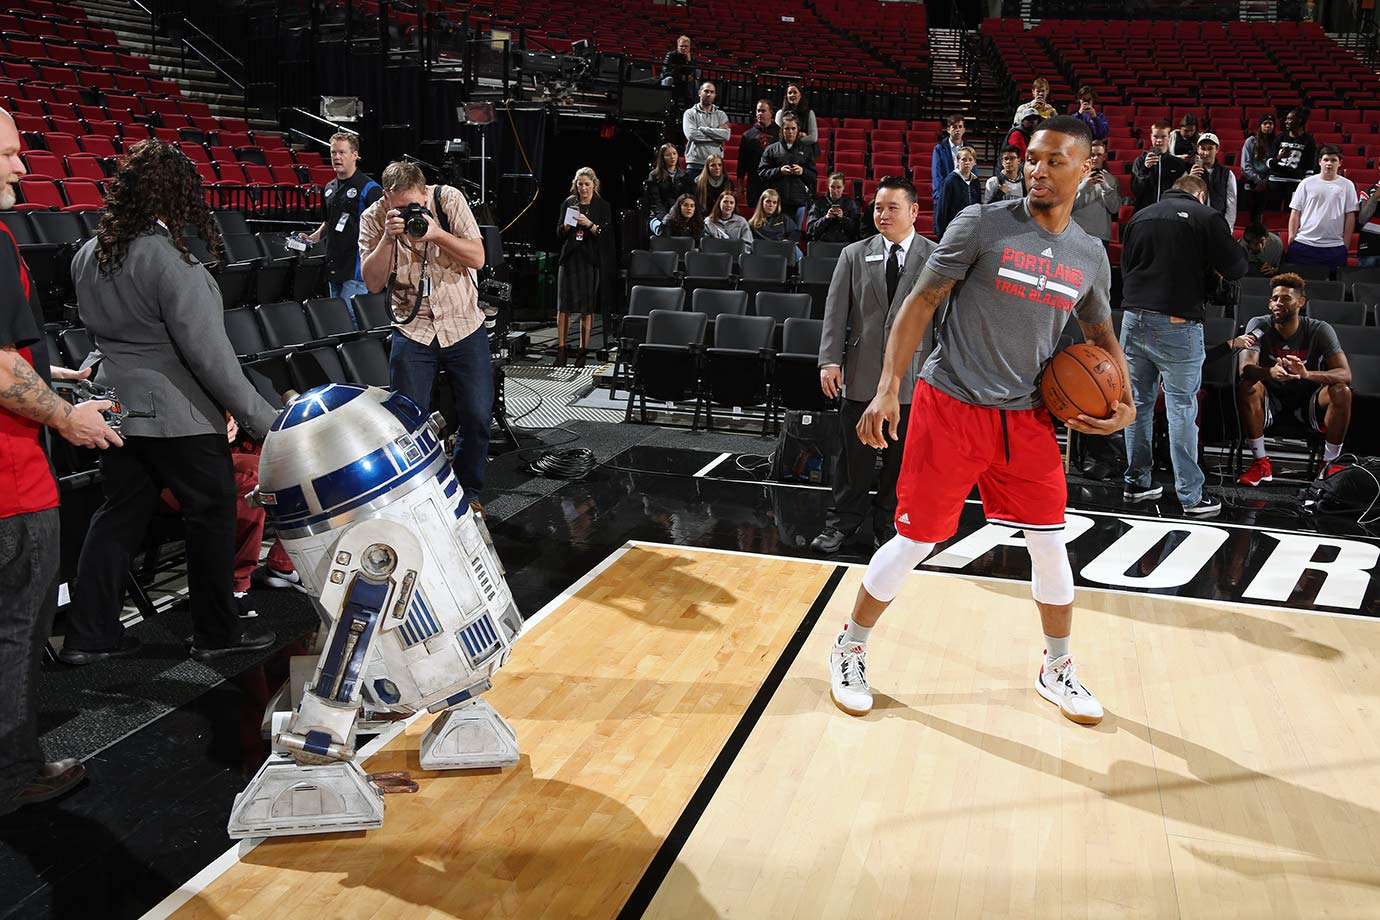 Portland Trail Blazers point guard Damian Lillard looks back at R2-D2 before a game against the New Orleans Pelicans on Dec. 14, 2015 at the Moda Center Arena in Portland, Ore.